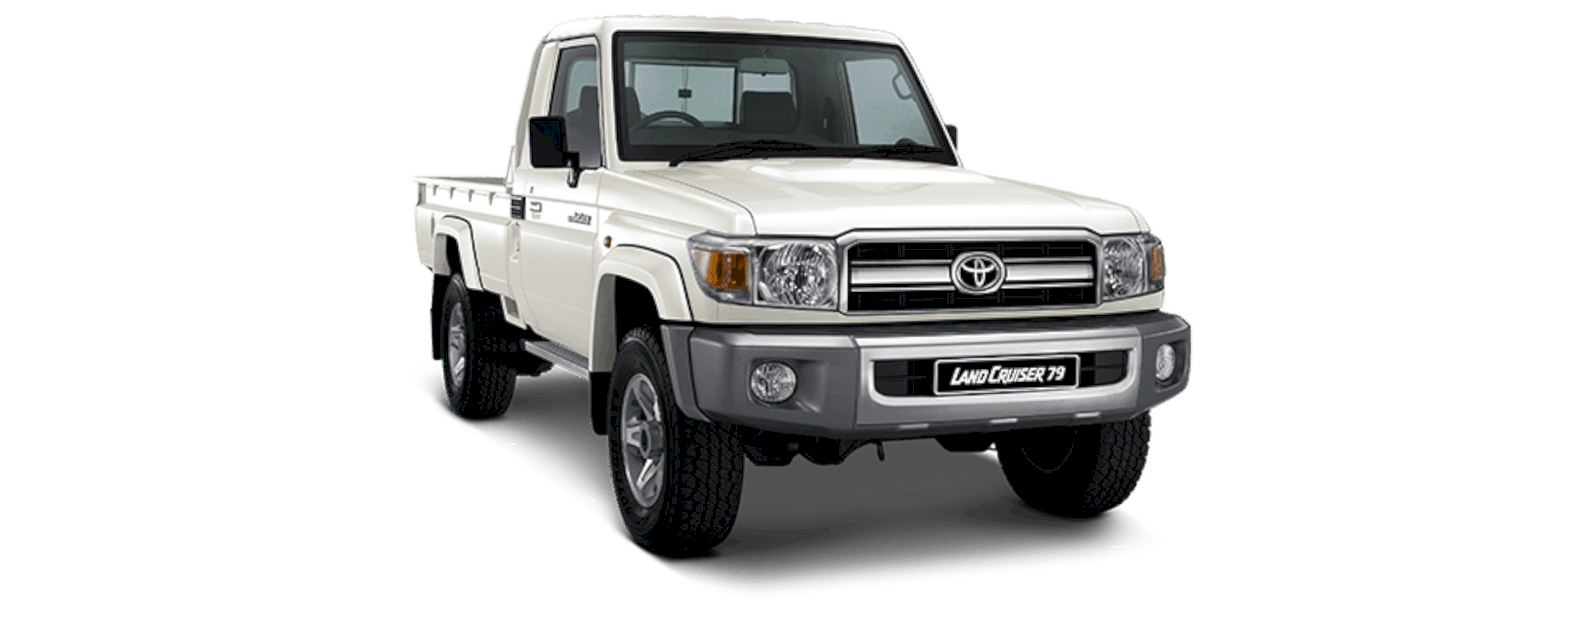 Toyota Land Cruiser 70 Series Namib 1